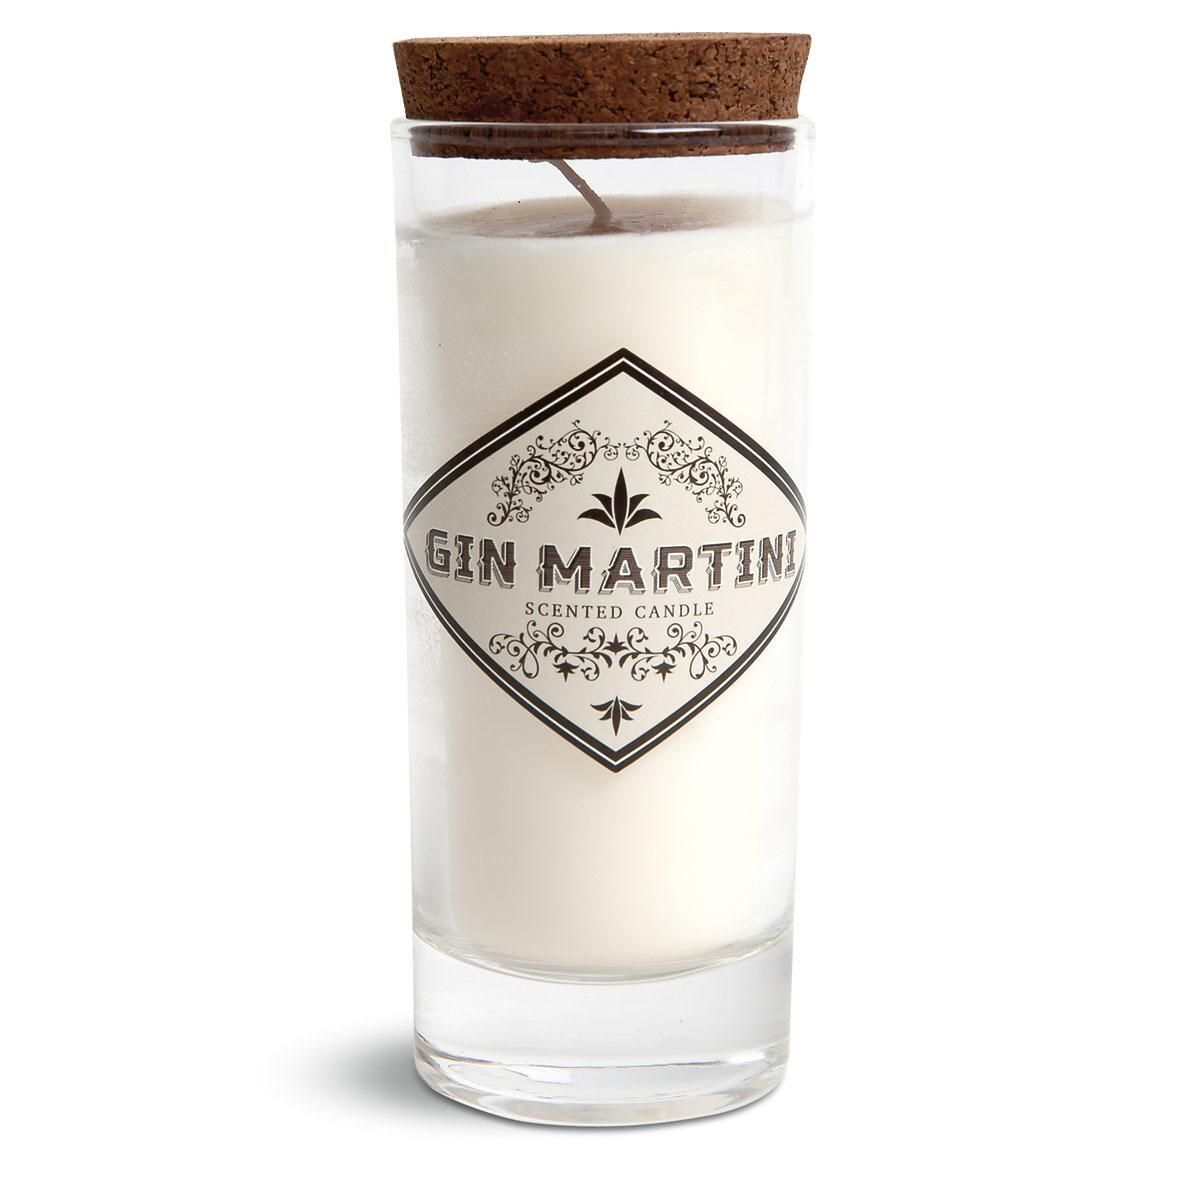 Gin Martini Cocktail Lounge Candle